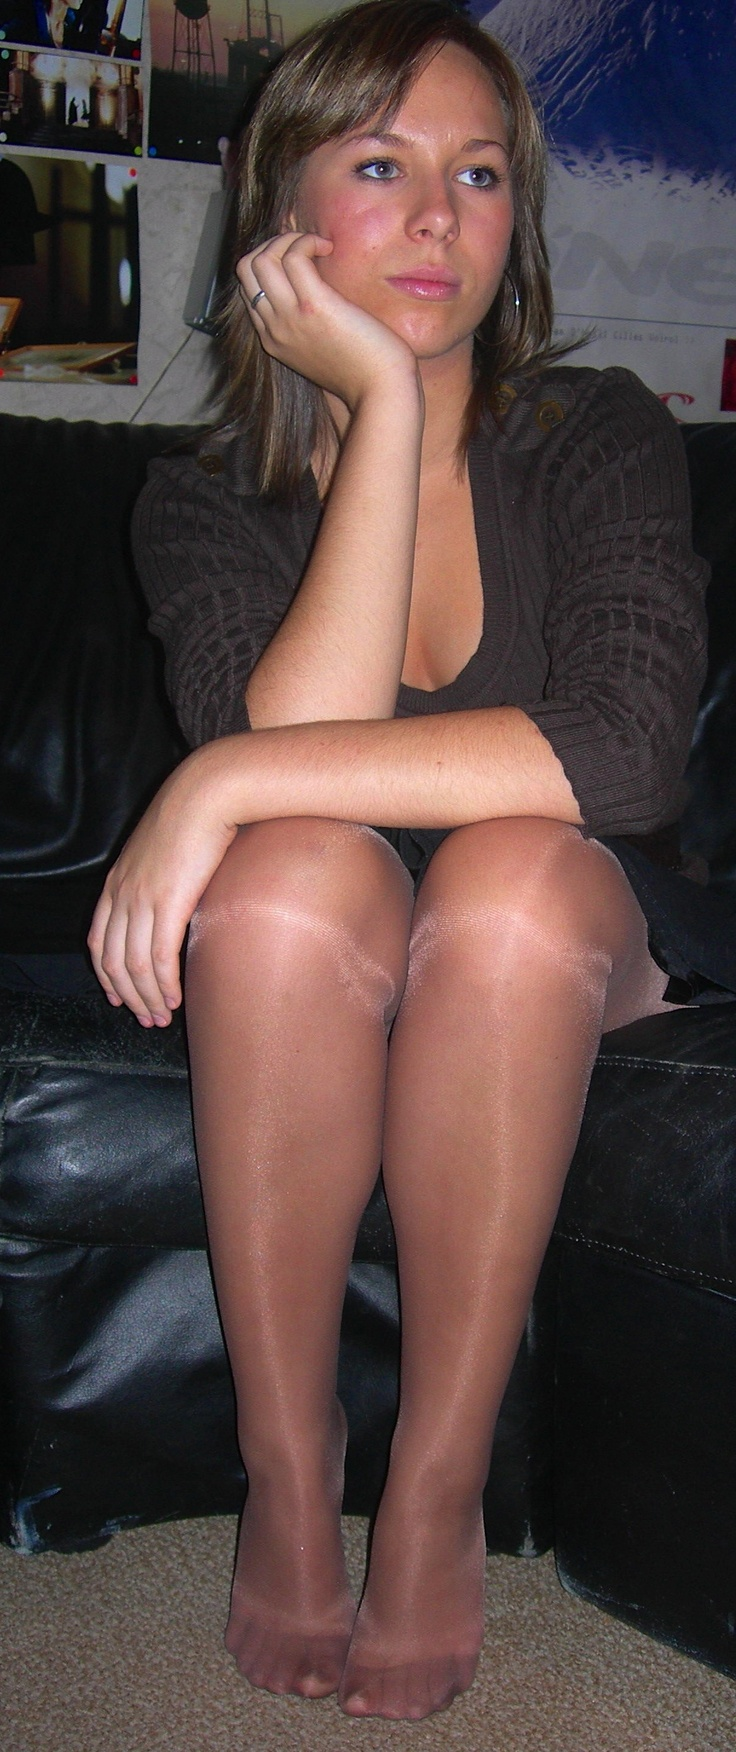 fully clothed sex pantyhose Search - XVIDEOSCOM